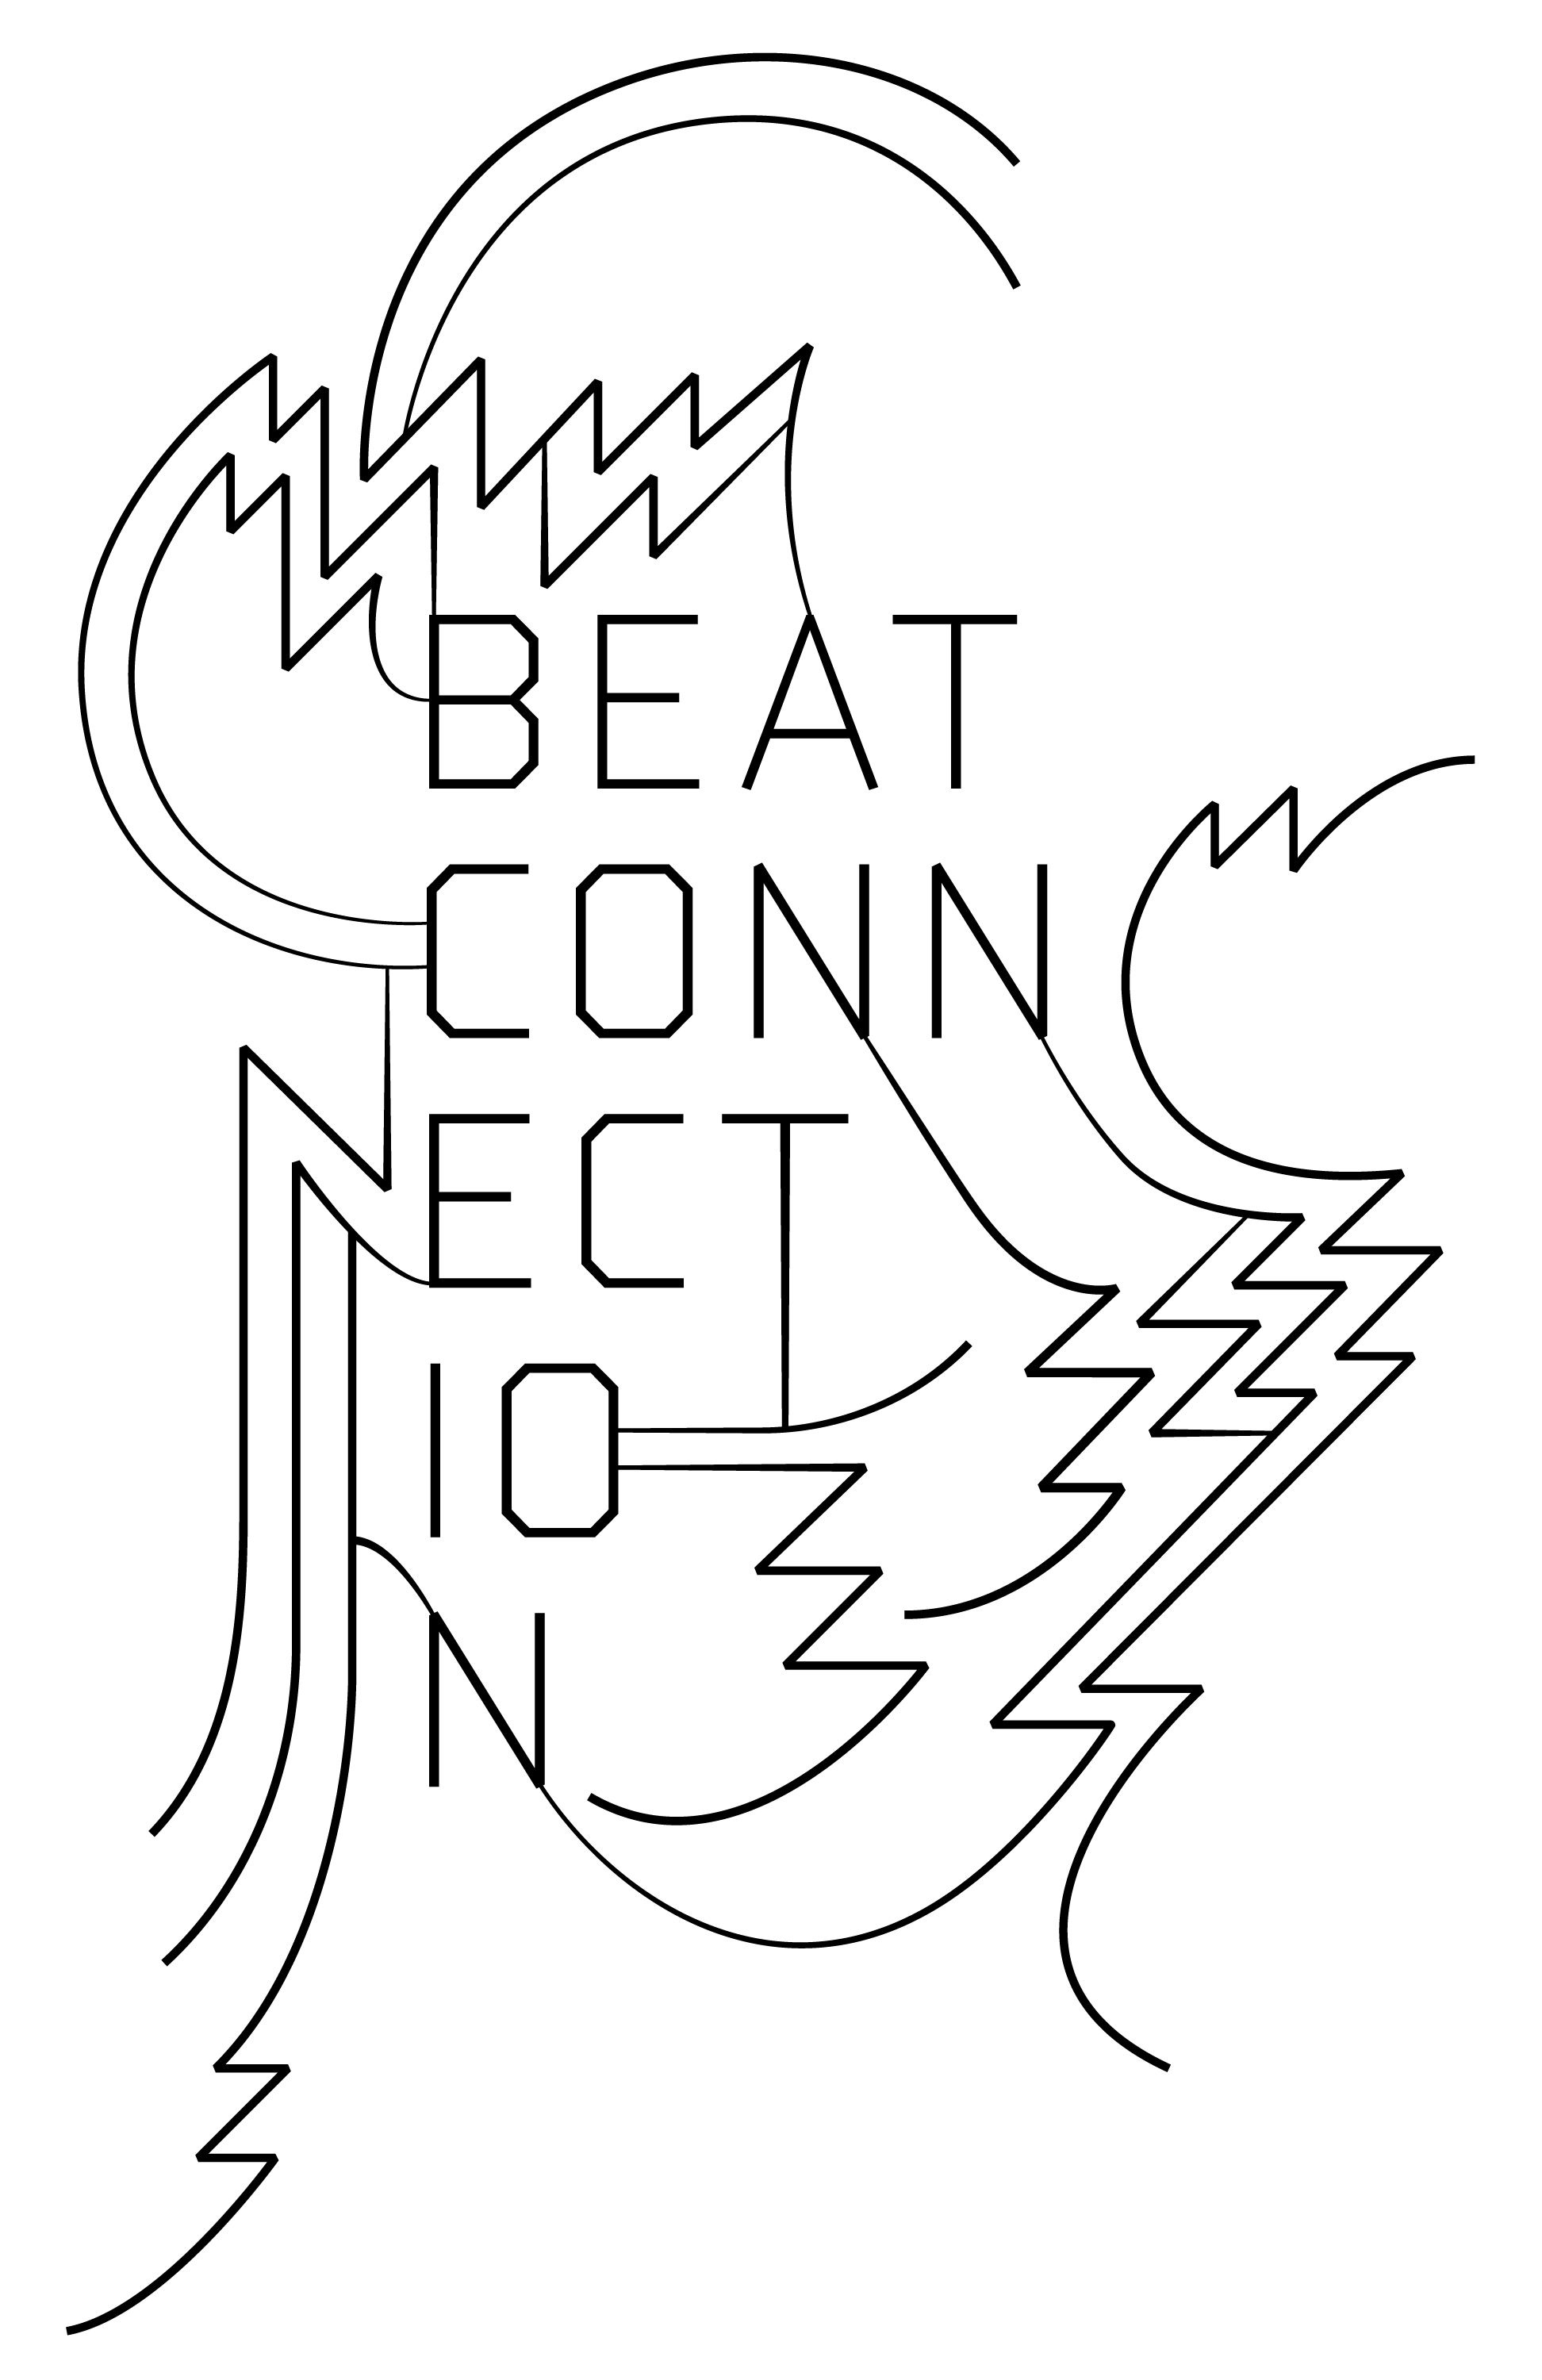 Beat Connection - Outtake 3 by Chelsey Scheffe